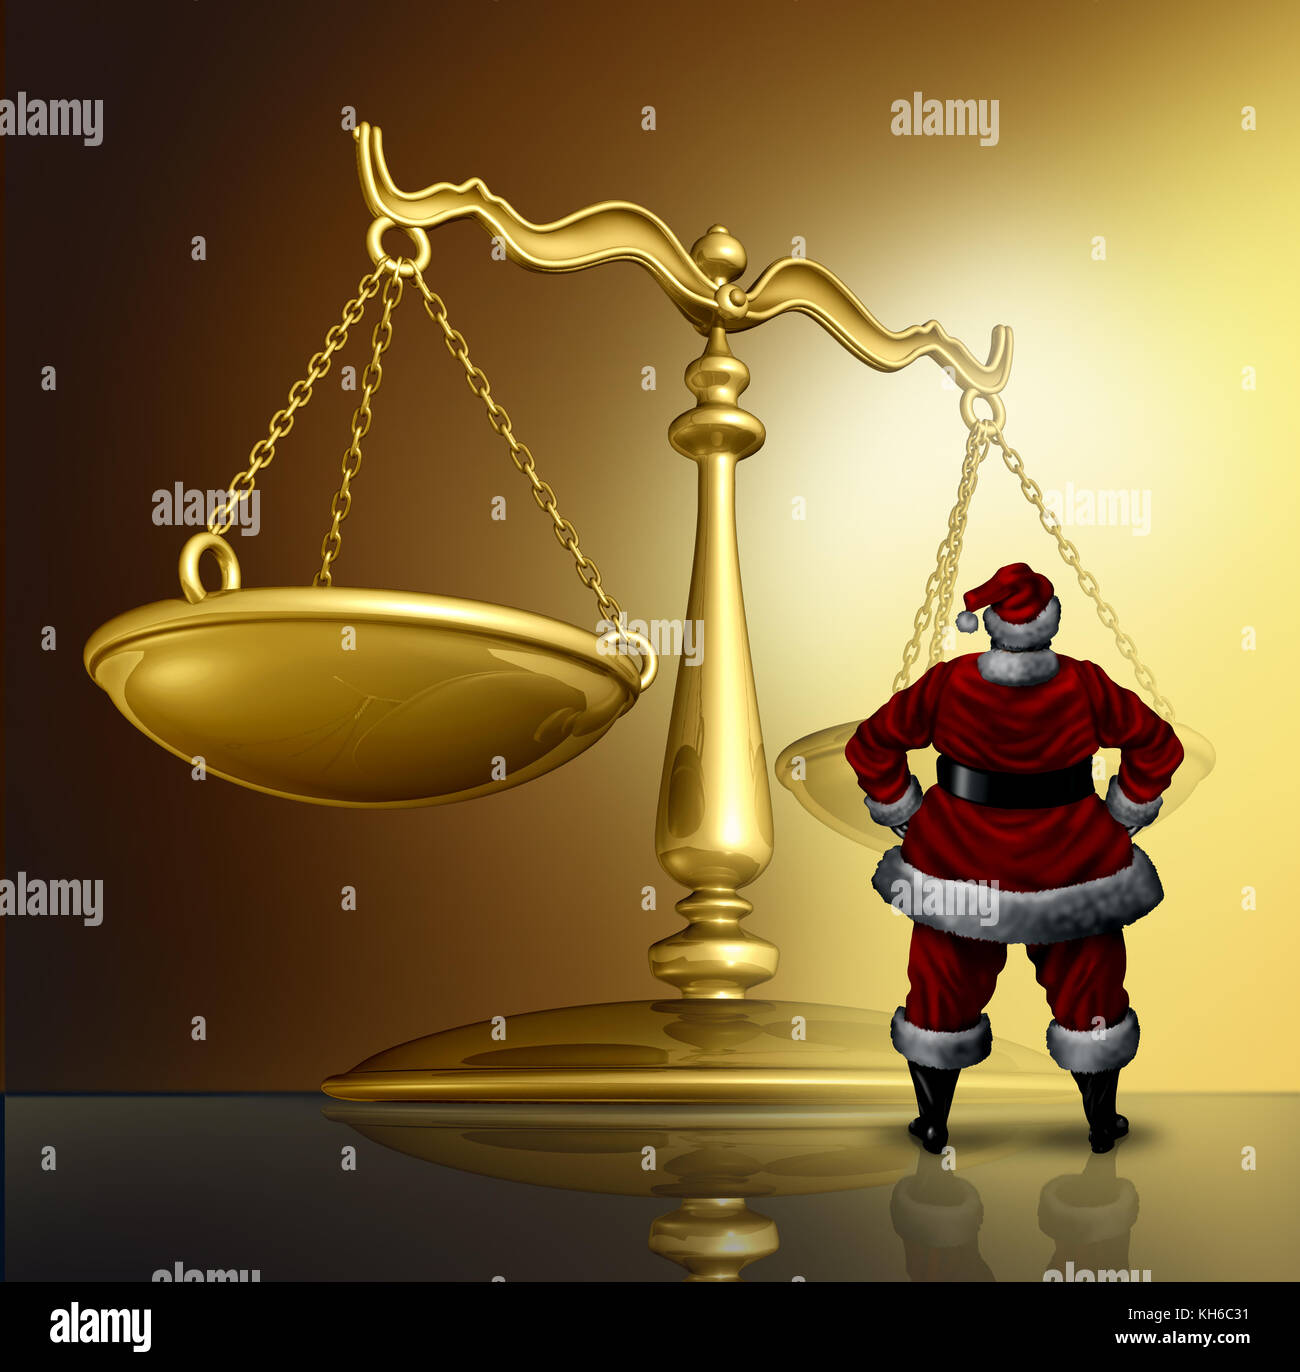 Christmas law and winter holiday legal issues as santaclaus standing in front of a justice scale with 3D render - Stock Image